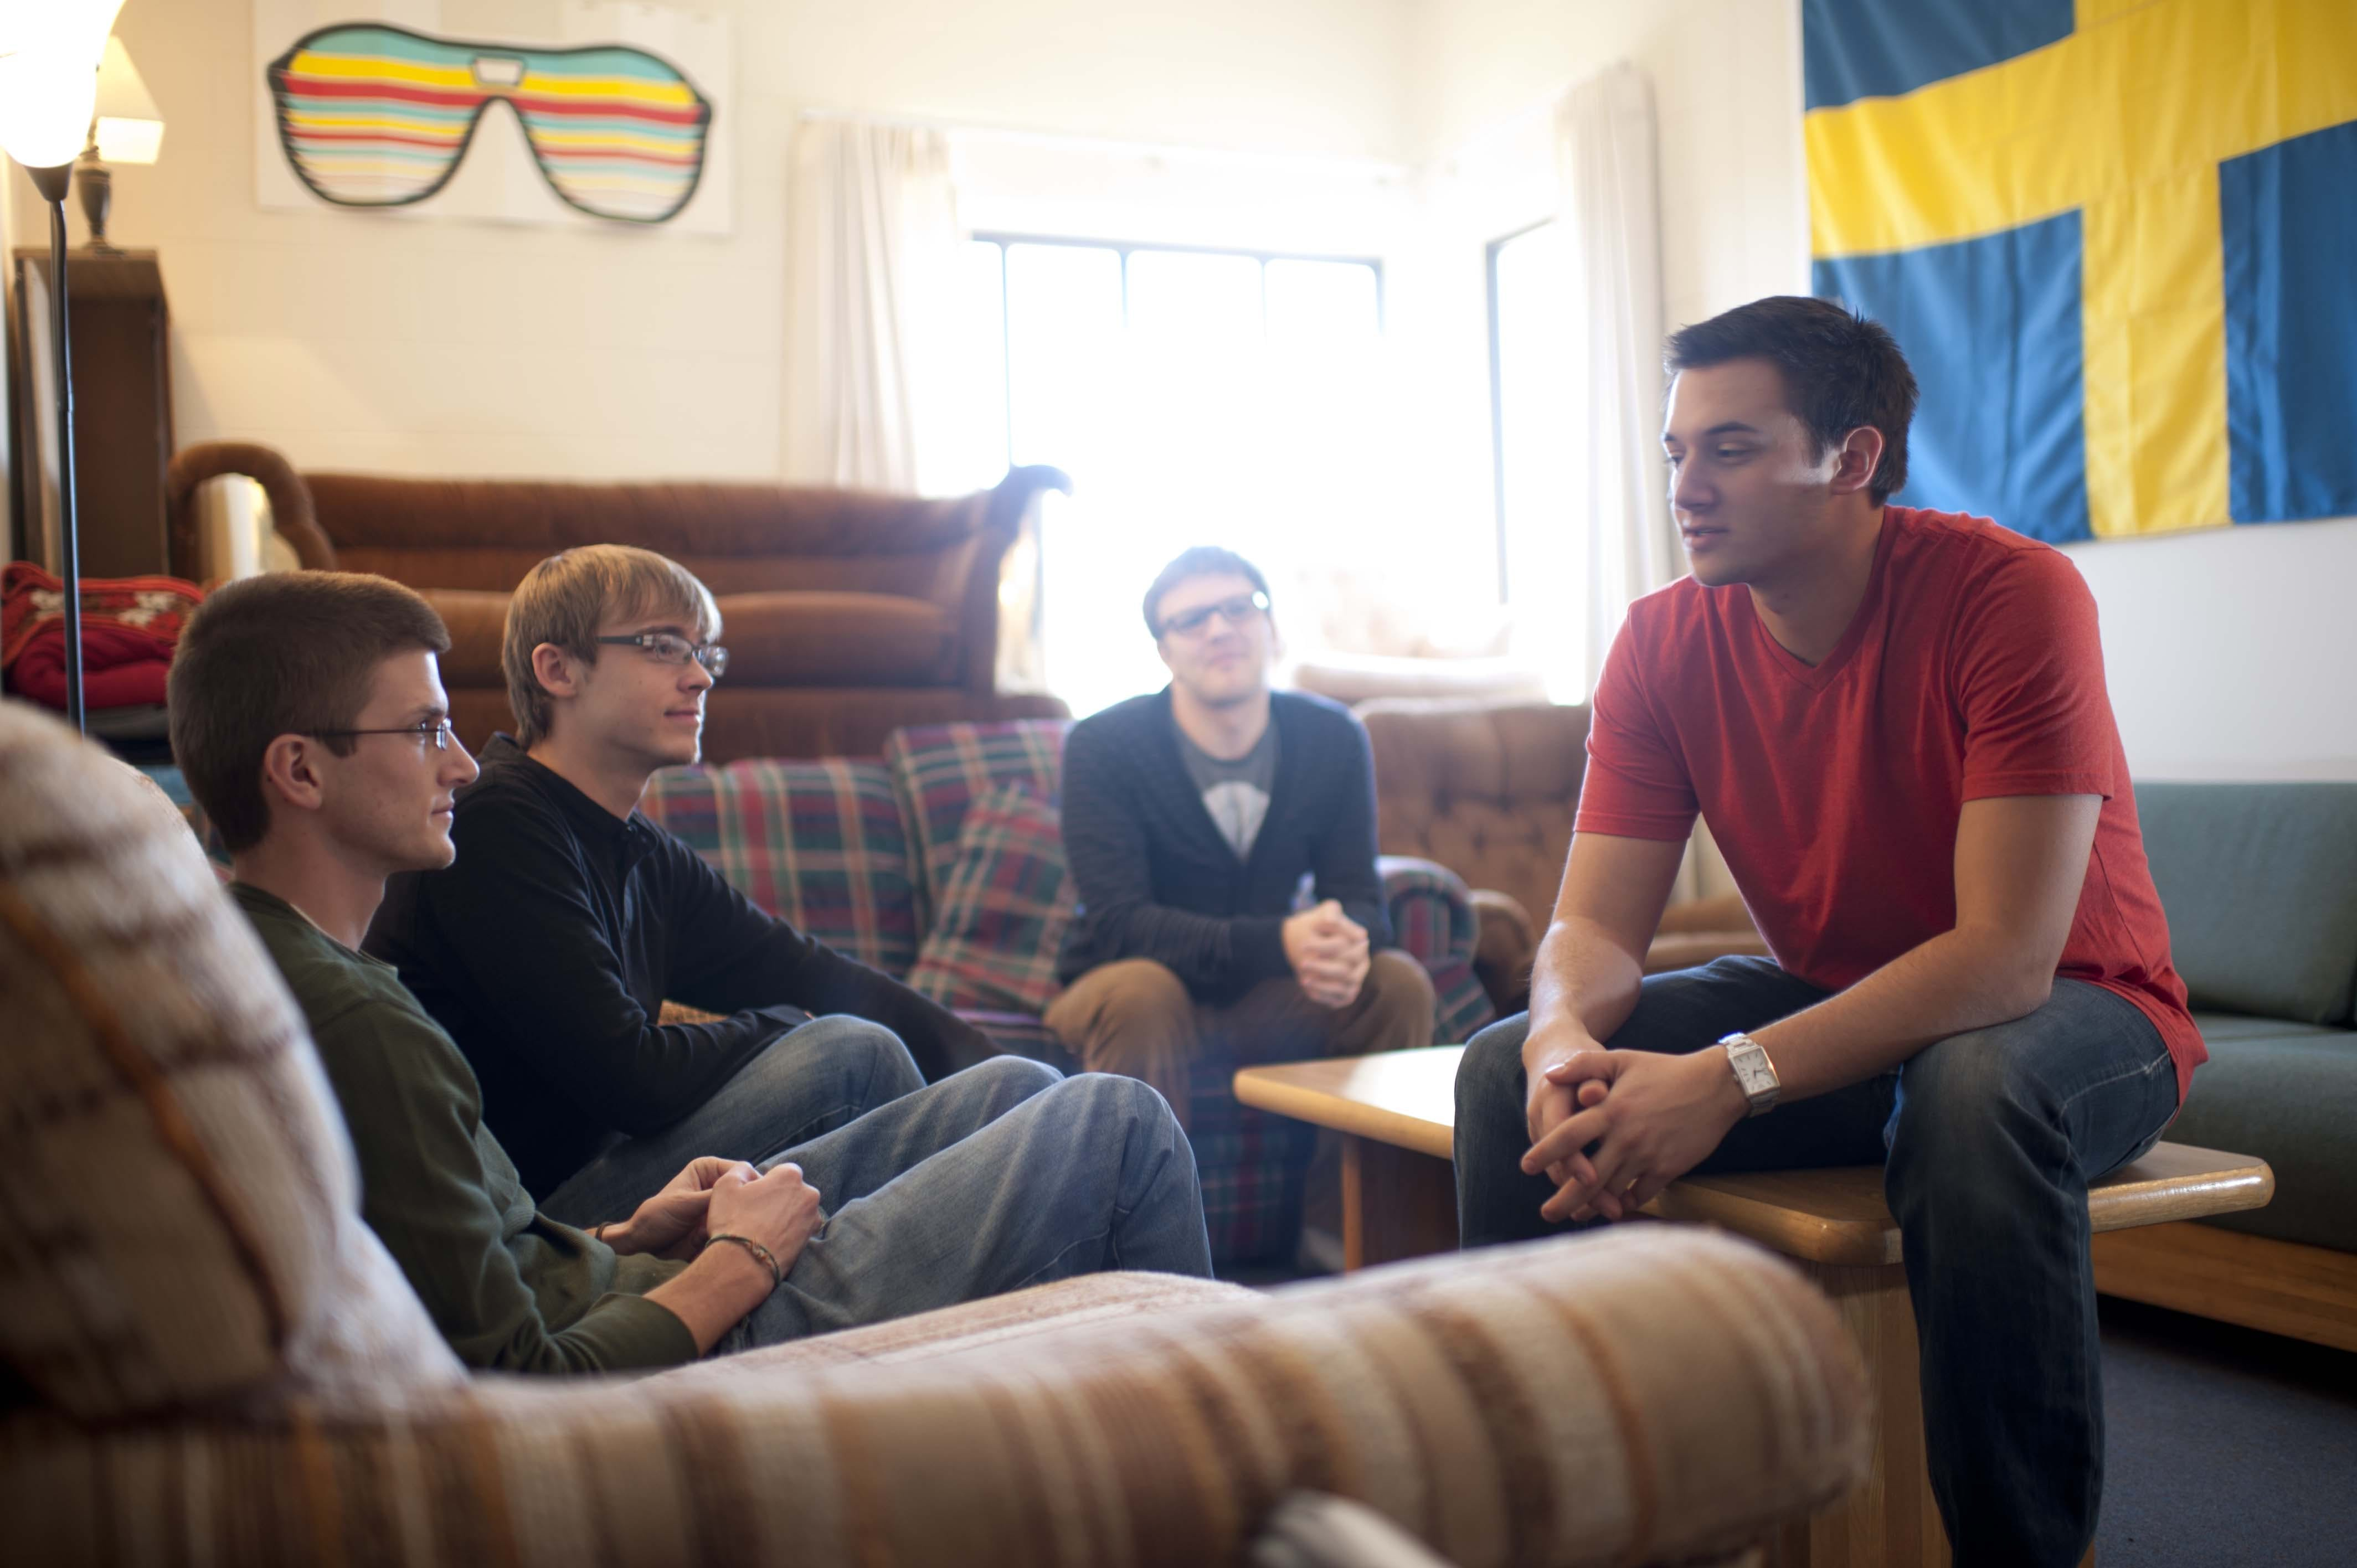 Bethel students talk in their dorm room